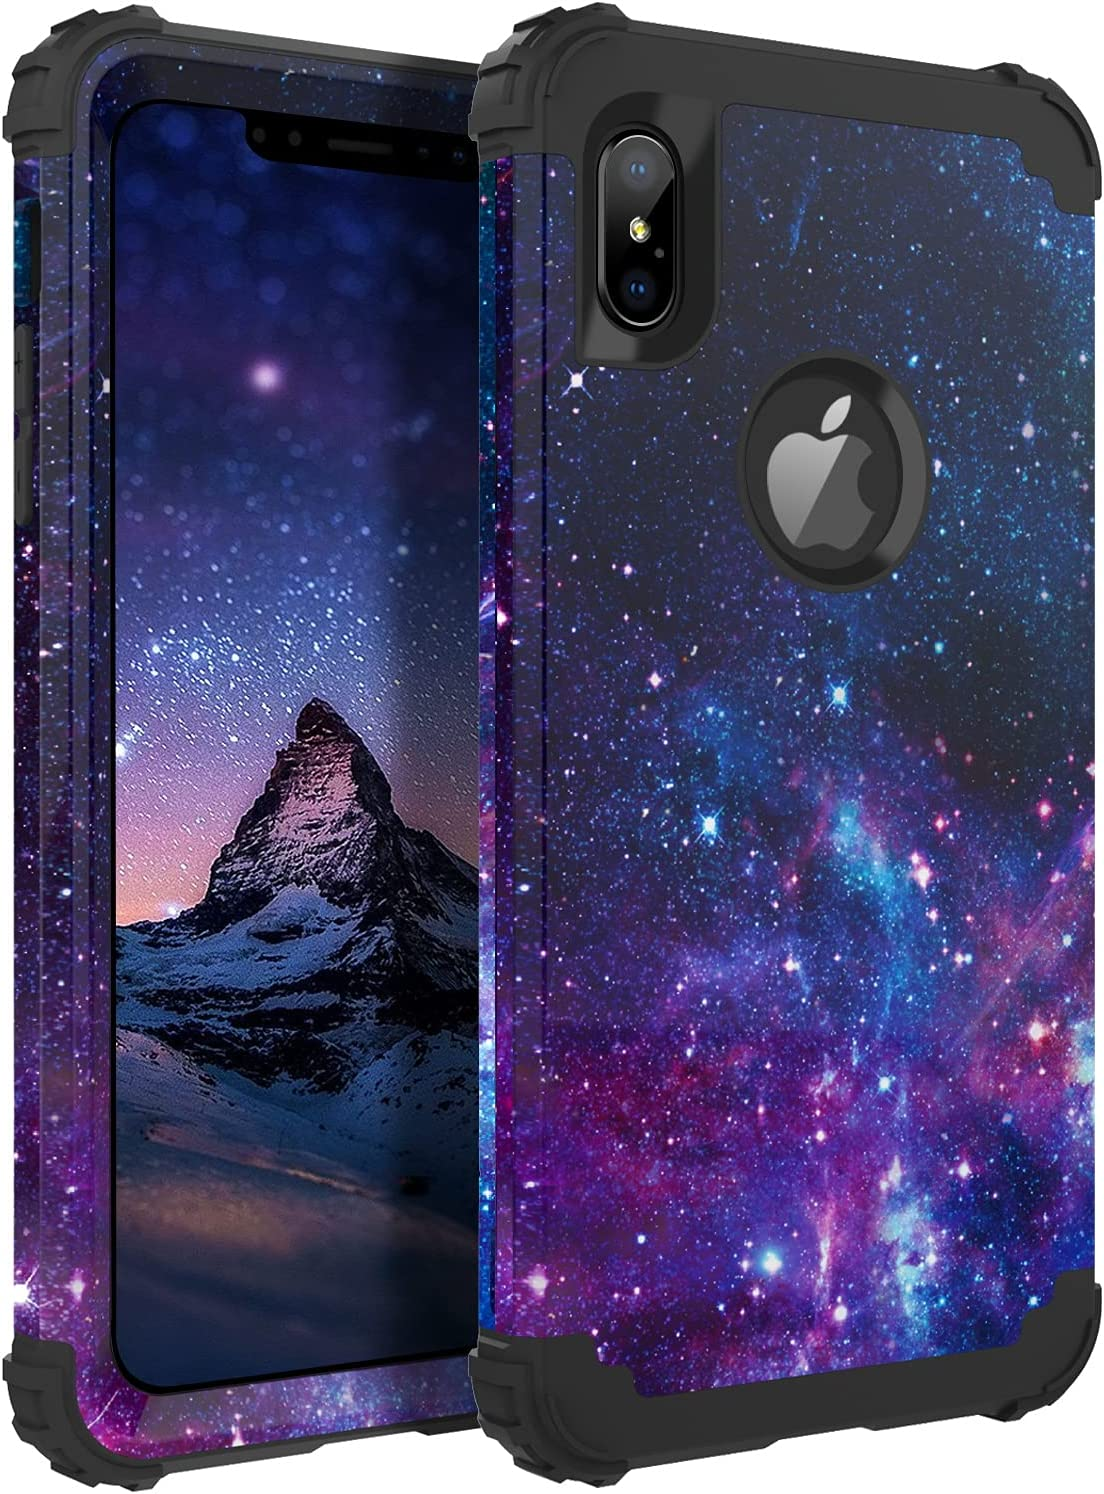 BENTOBEN iPhone Xs Max Case, Heavy Duty Shockproof 3 in 1 Hybrid Hard PC Soft Silicone Bumper Space Galaxy Design Protective Phone Case Cover for iPhone Xs Max 6.5 Inch 2018, Space